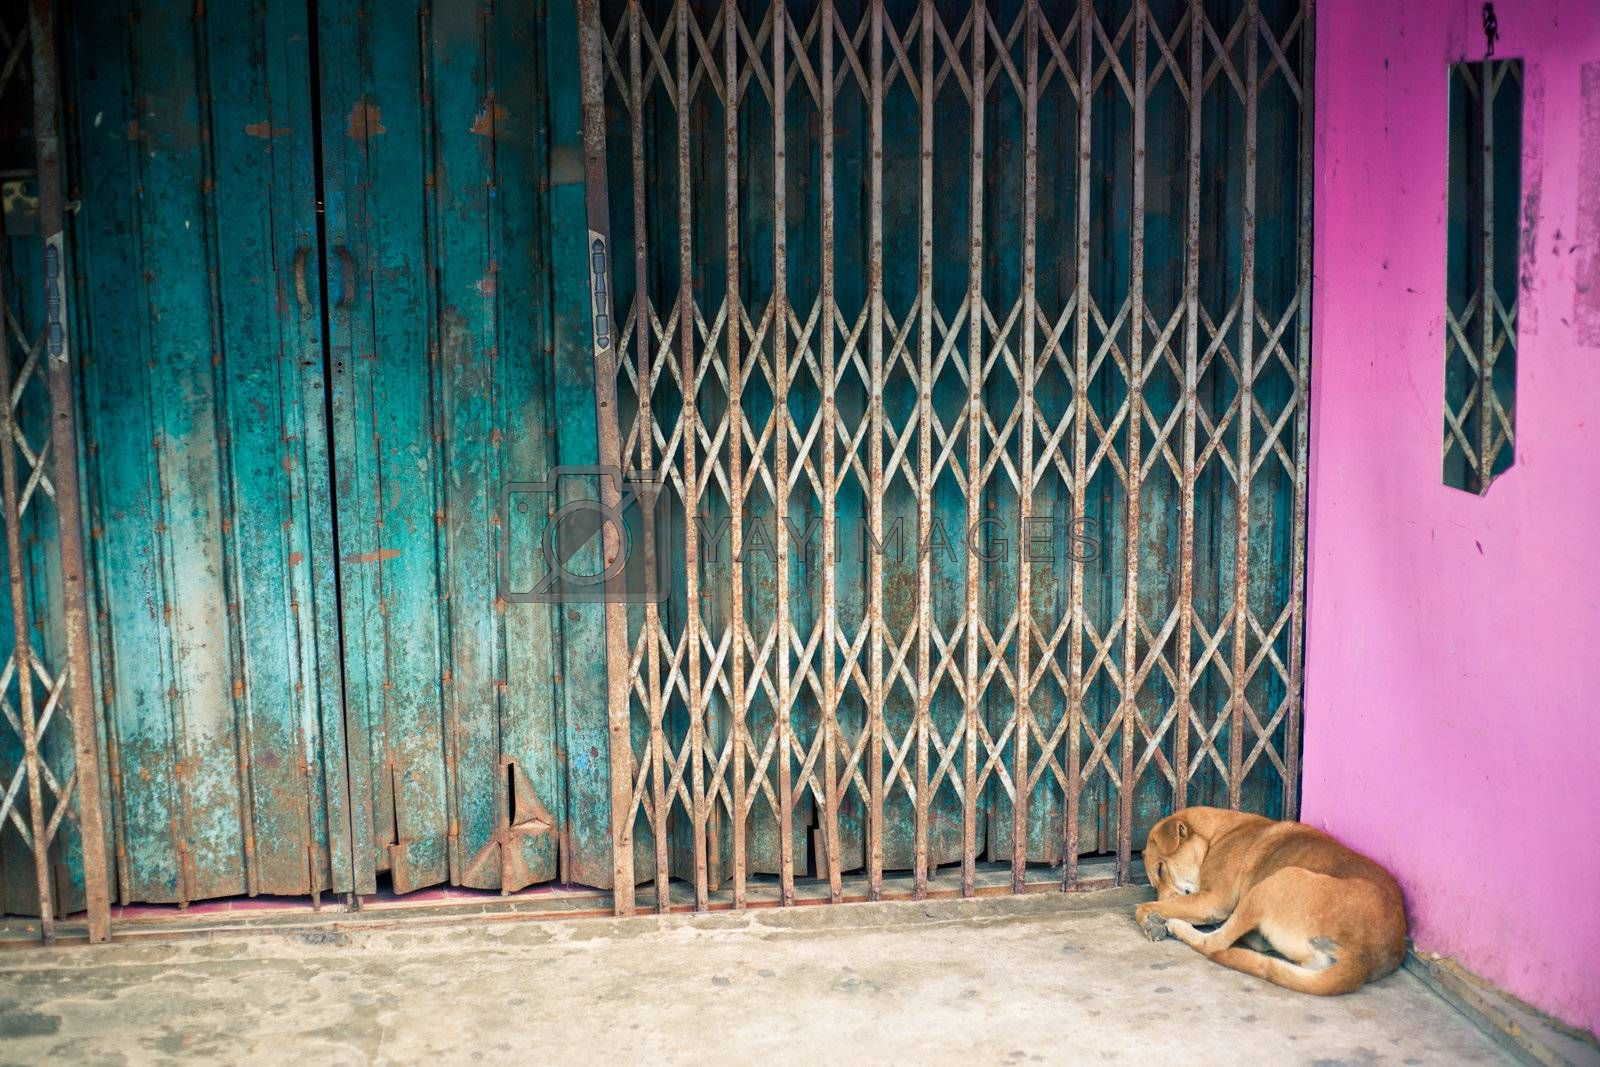 The sleeping dog is lying in the corner of a building